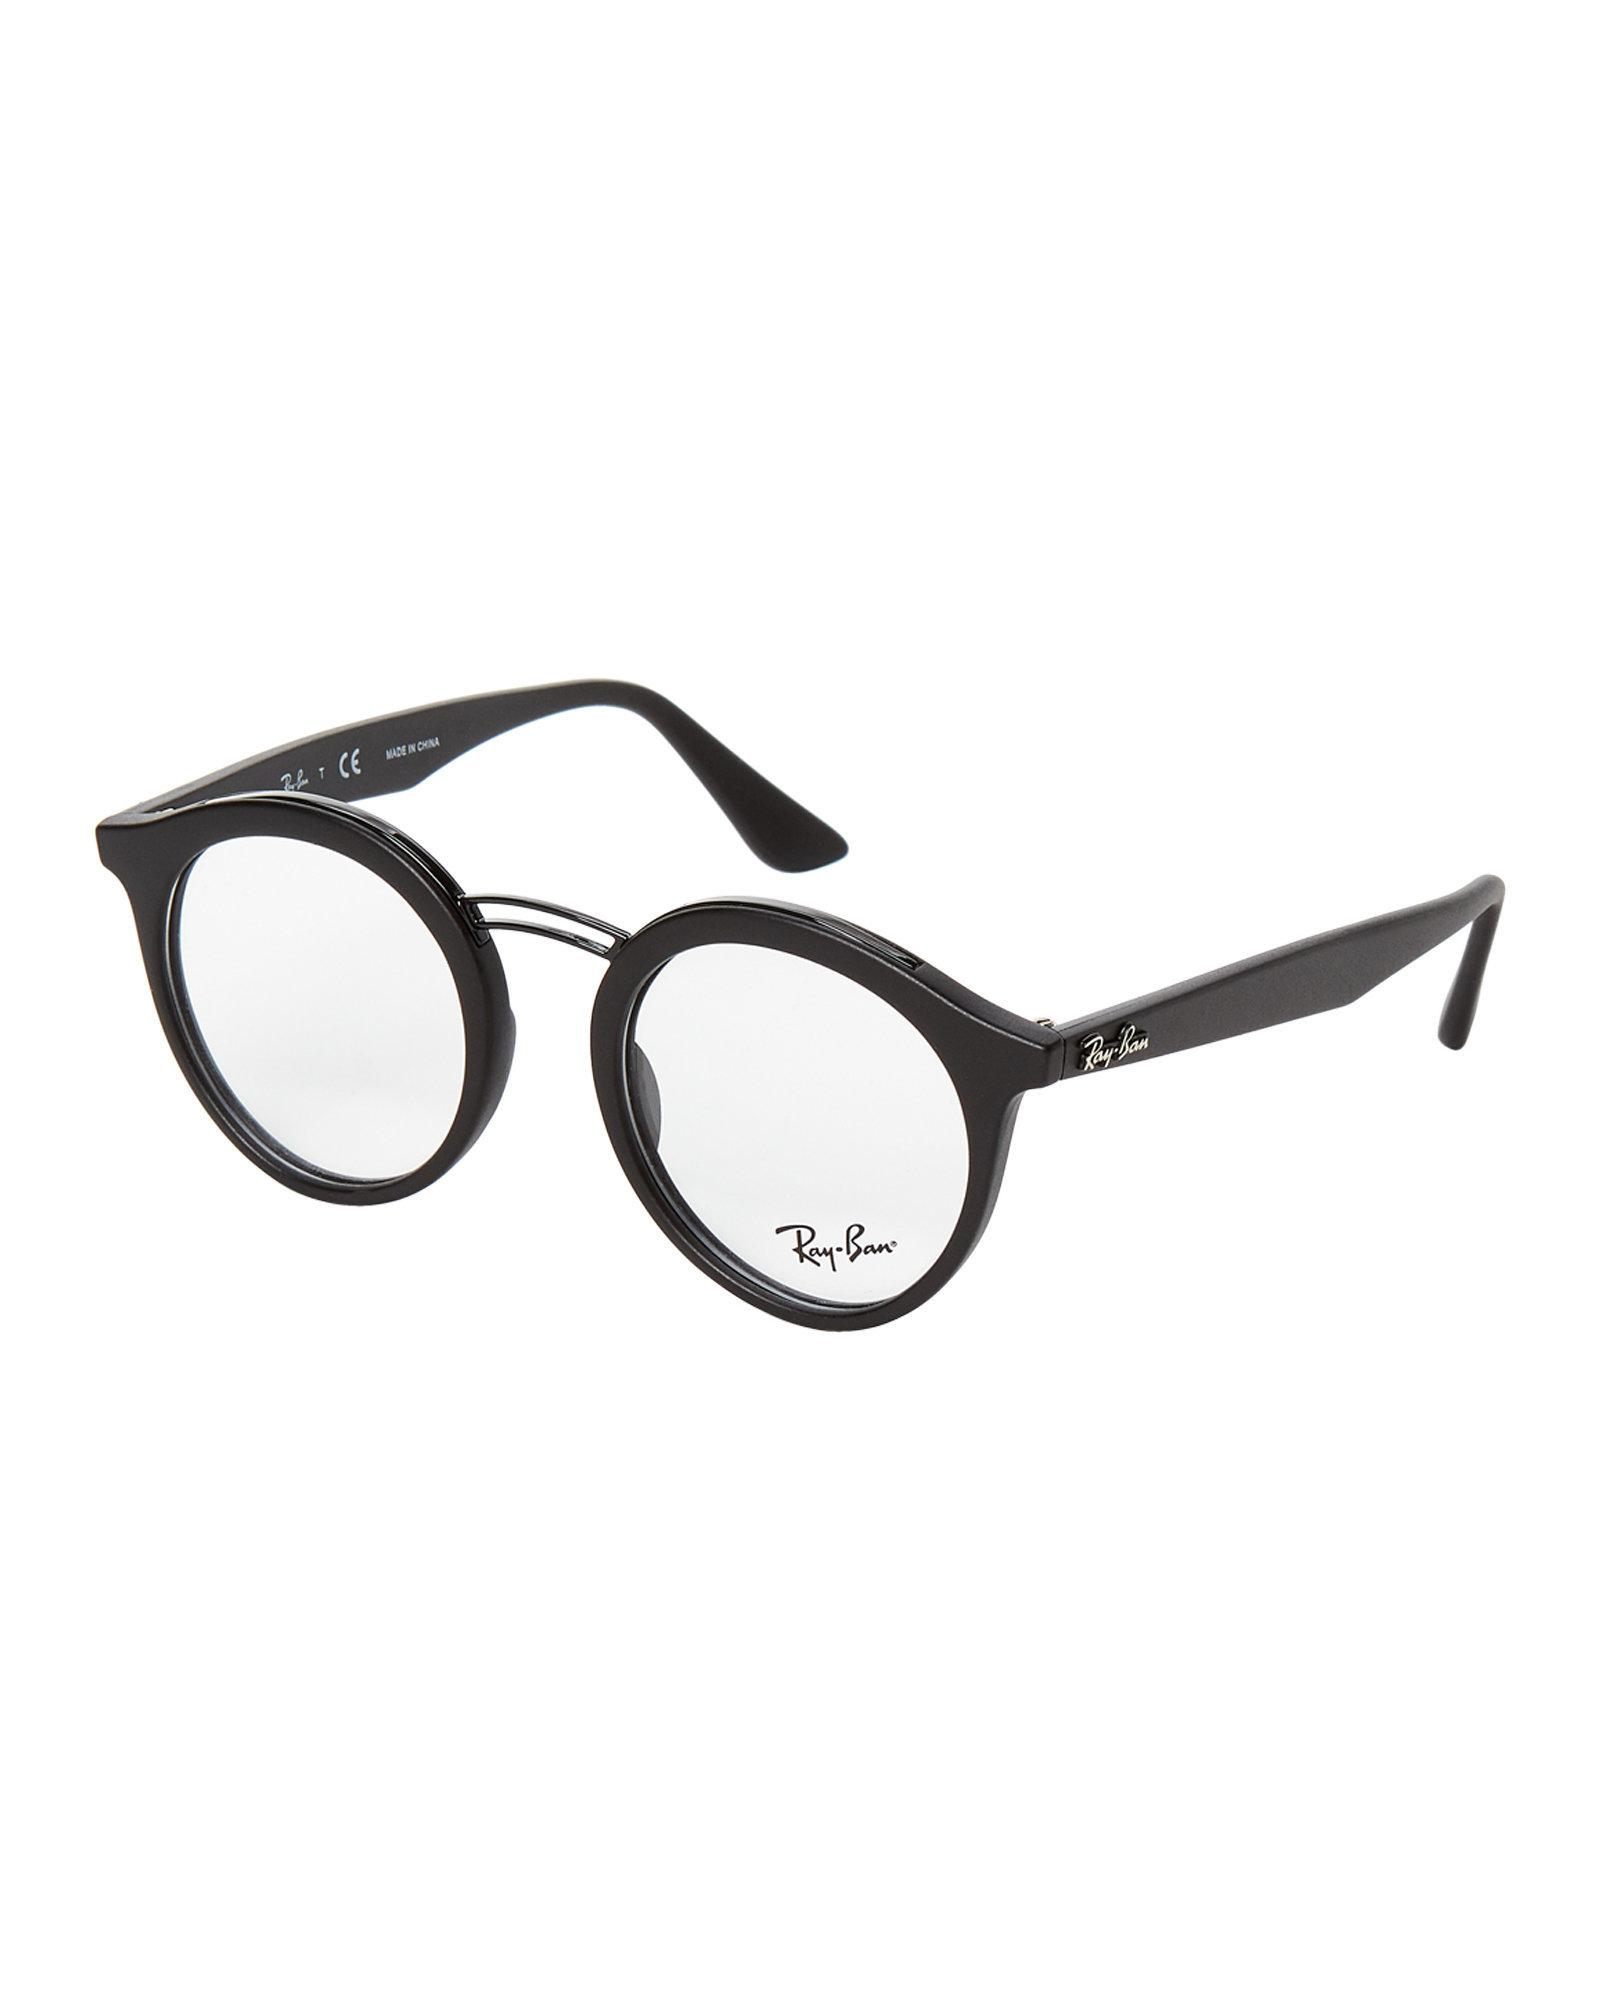 Lyst - Ray-Ban Rb7110 Black Small Round Optical Frames in Black for Men